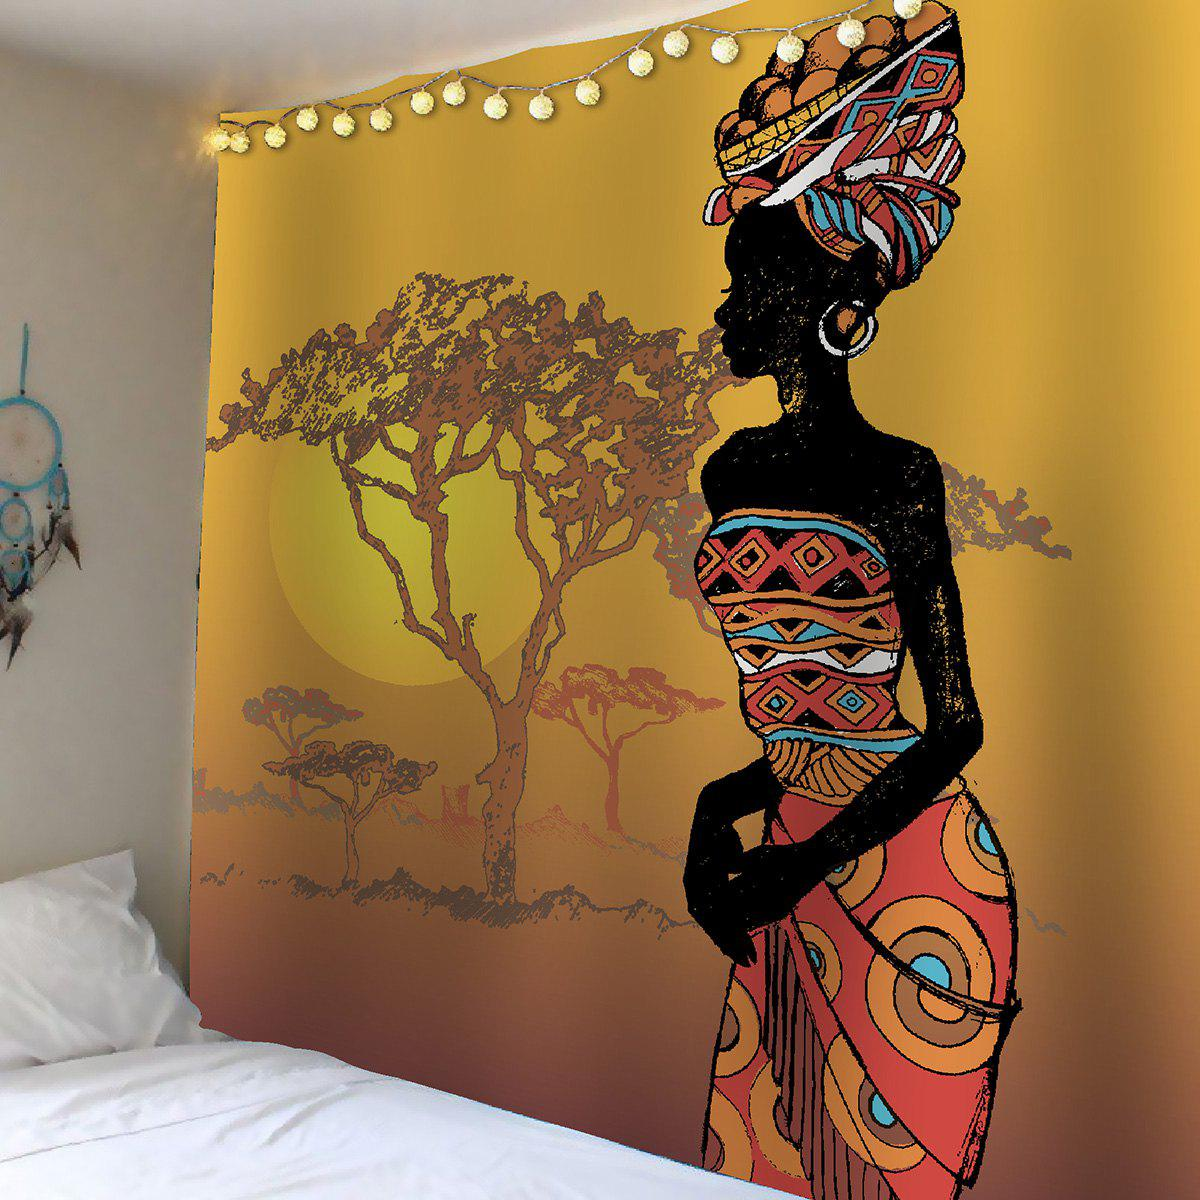 Home Decor African Girl Tree Sunset Waterproof TapestryHOME<br><br>Size: W51 INCH * L59 INCH; Color: COLORFUL; Style: Hipster; Material: Velvet; Feature: Removable,Washable; Shape/Pattern: Print; Weight: 0.5000kg; Package Contents: 1 x Tapestry;